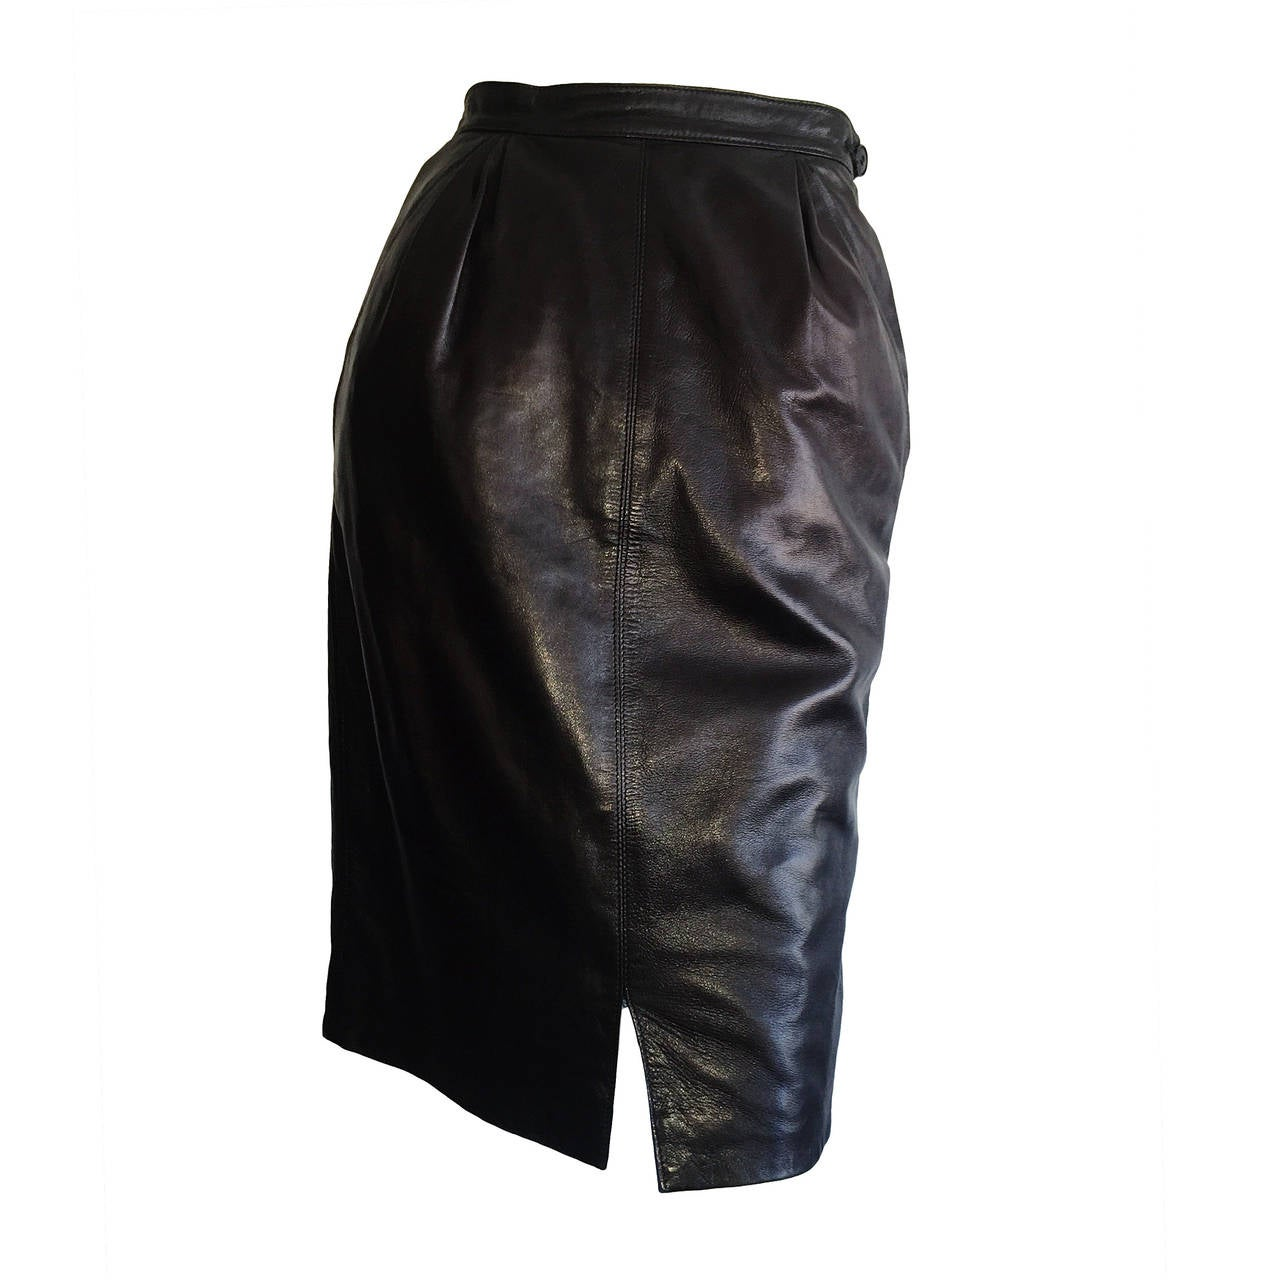 Sexy Vintage Yves Saint Laurent Leather High Waisted Black Pencil ...